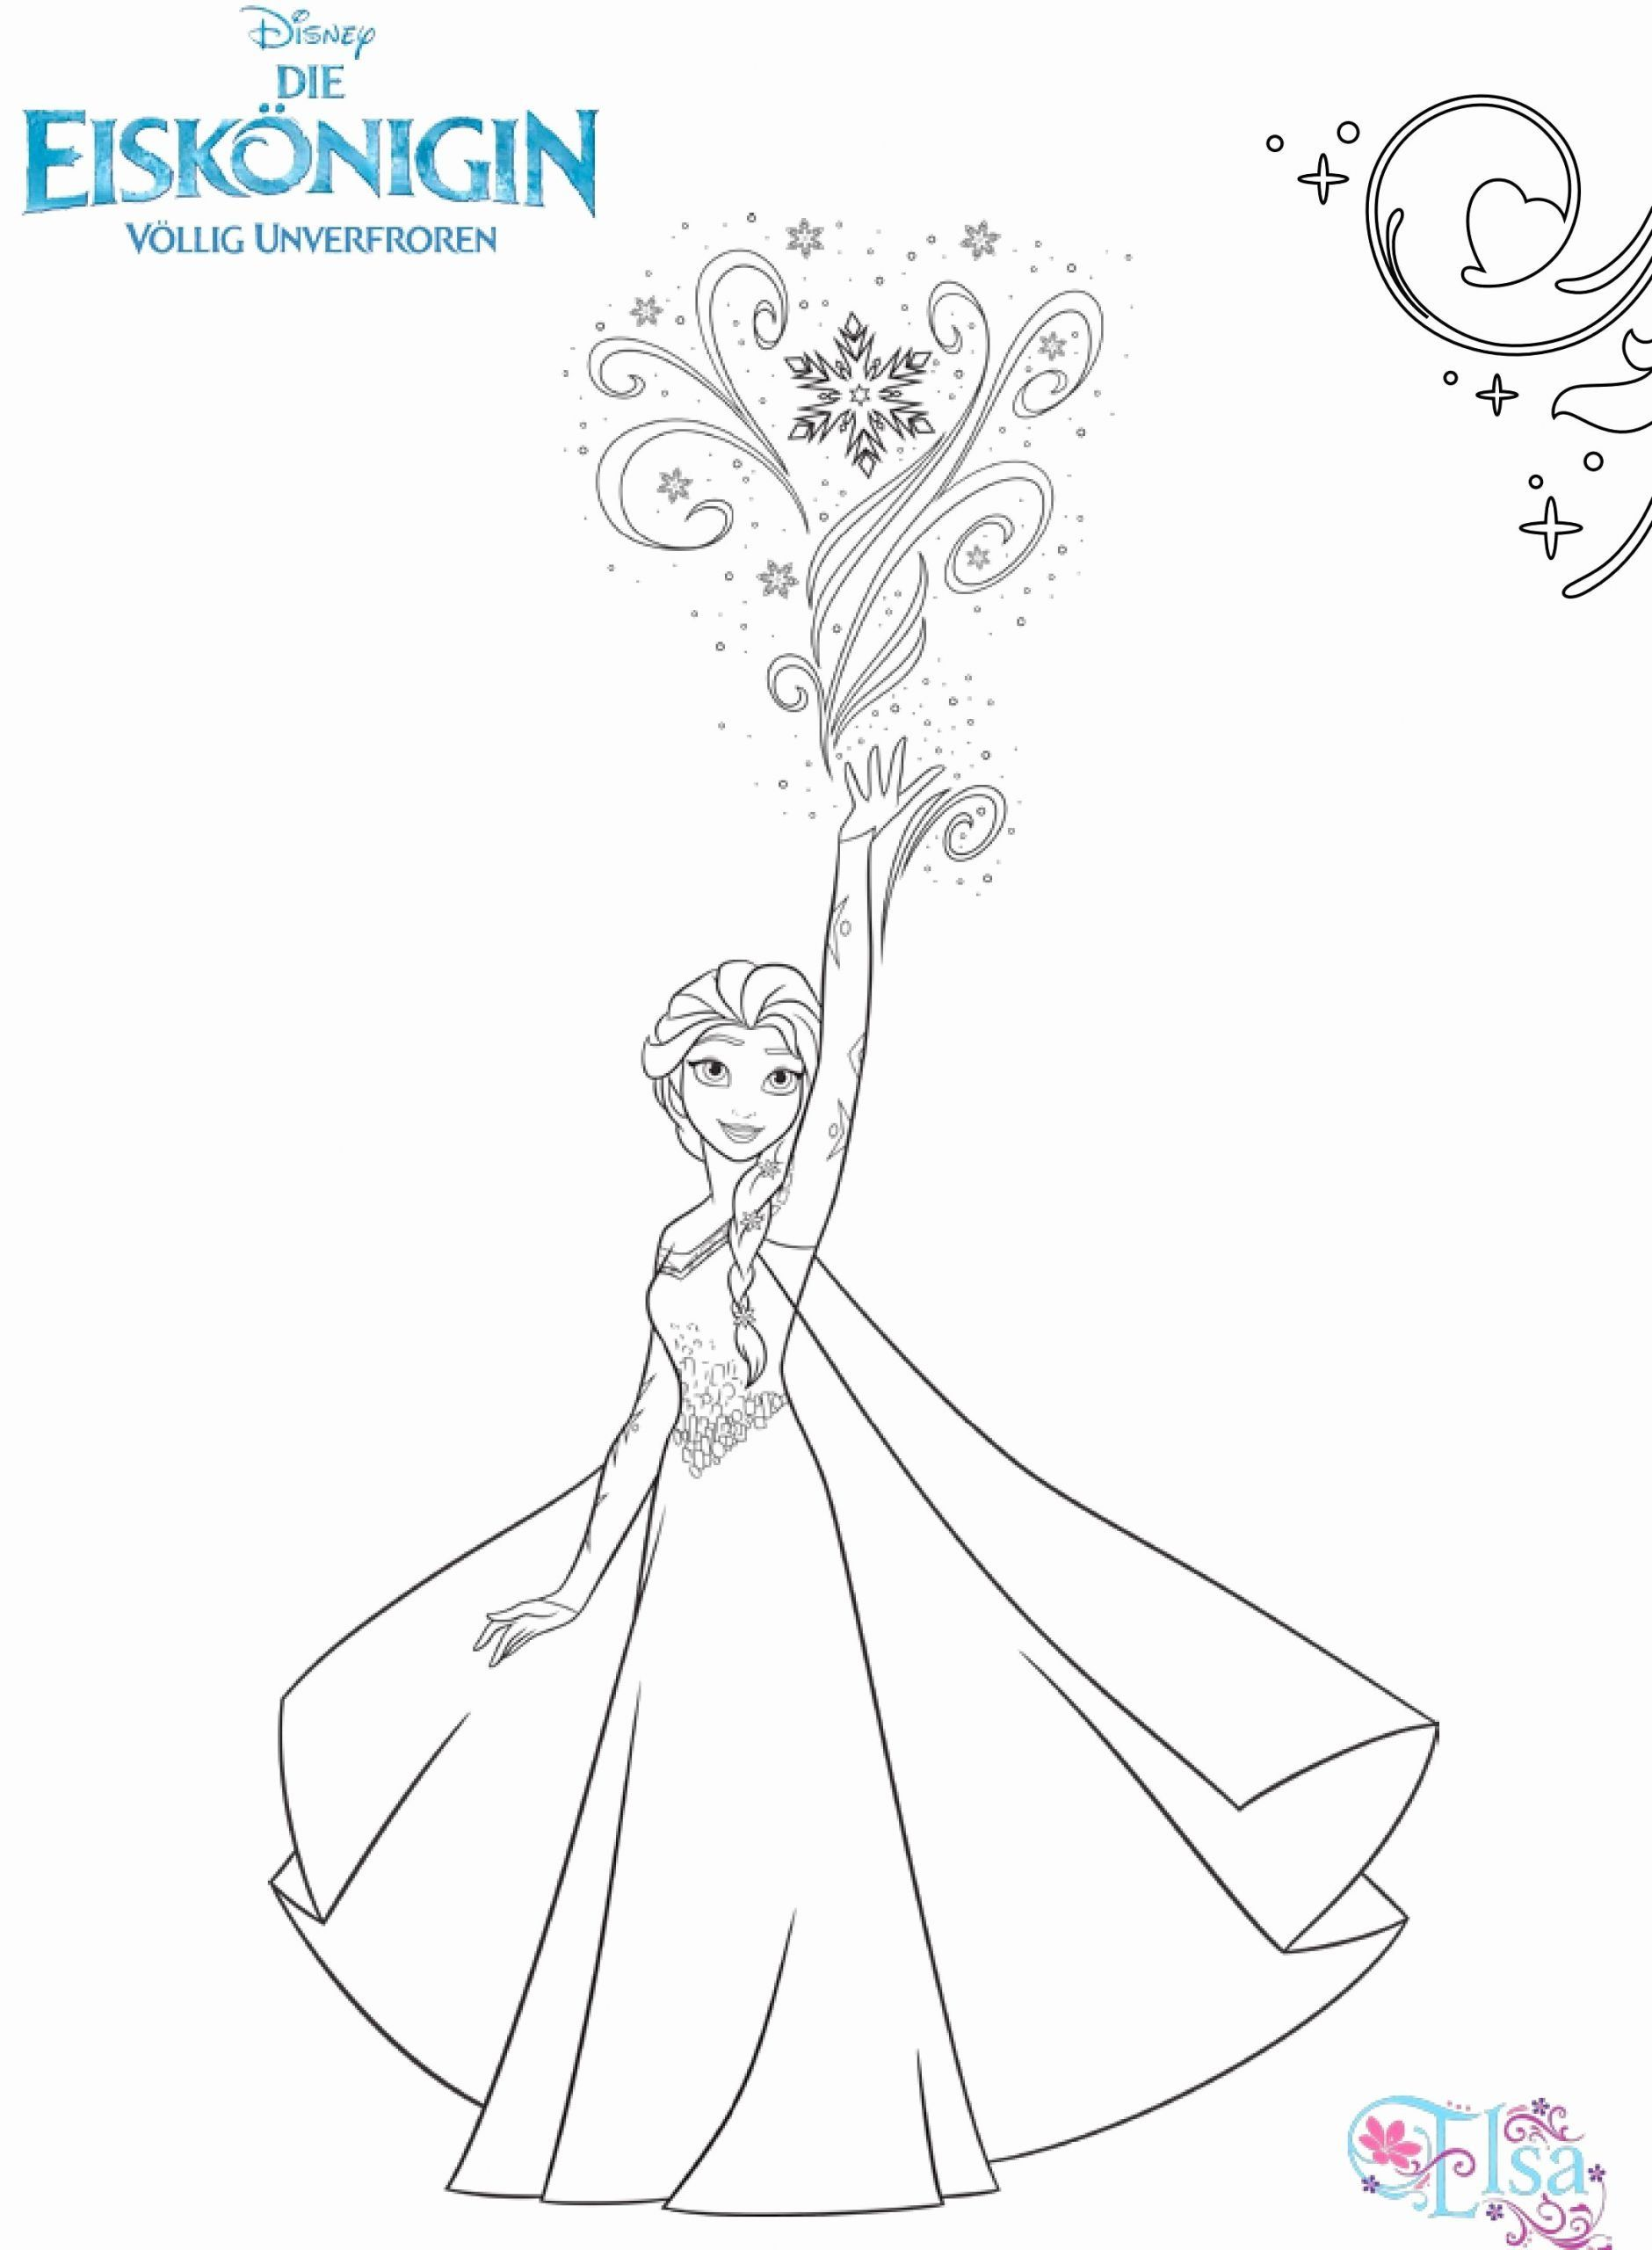 Flower Girl Coloring Books Beautiful 13 Beste Ausmalbilder Elsa Zum Ausdrucken Kostenlos Coloring Books Frozen Coloring Pages Cartoon Coloring Pages